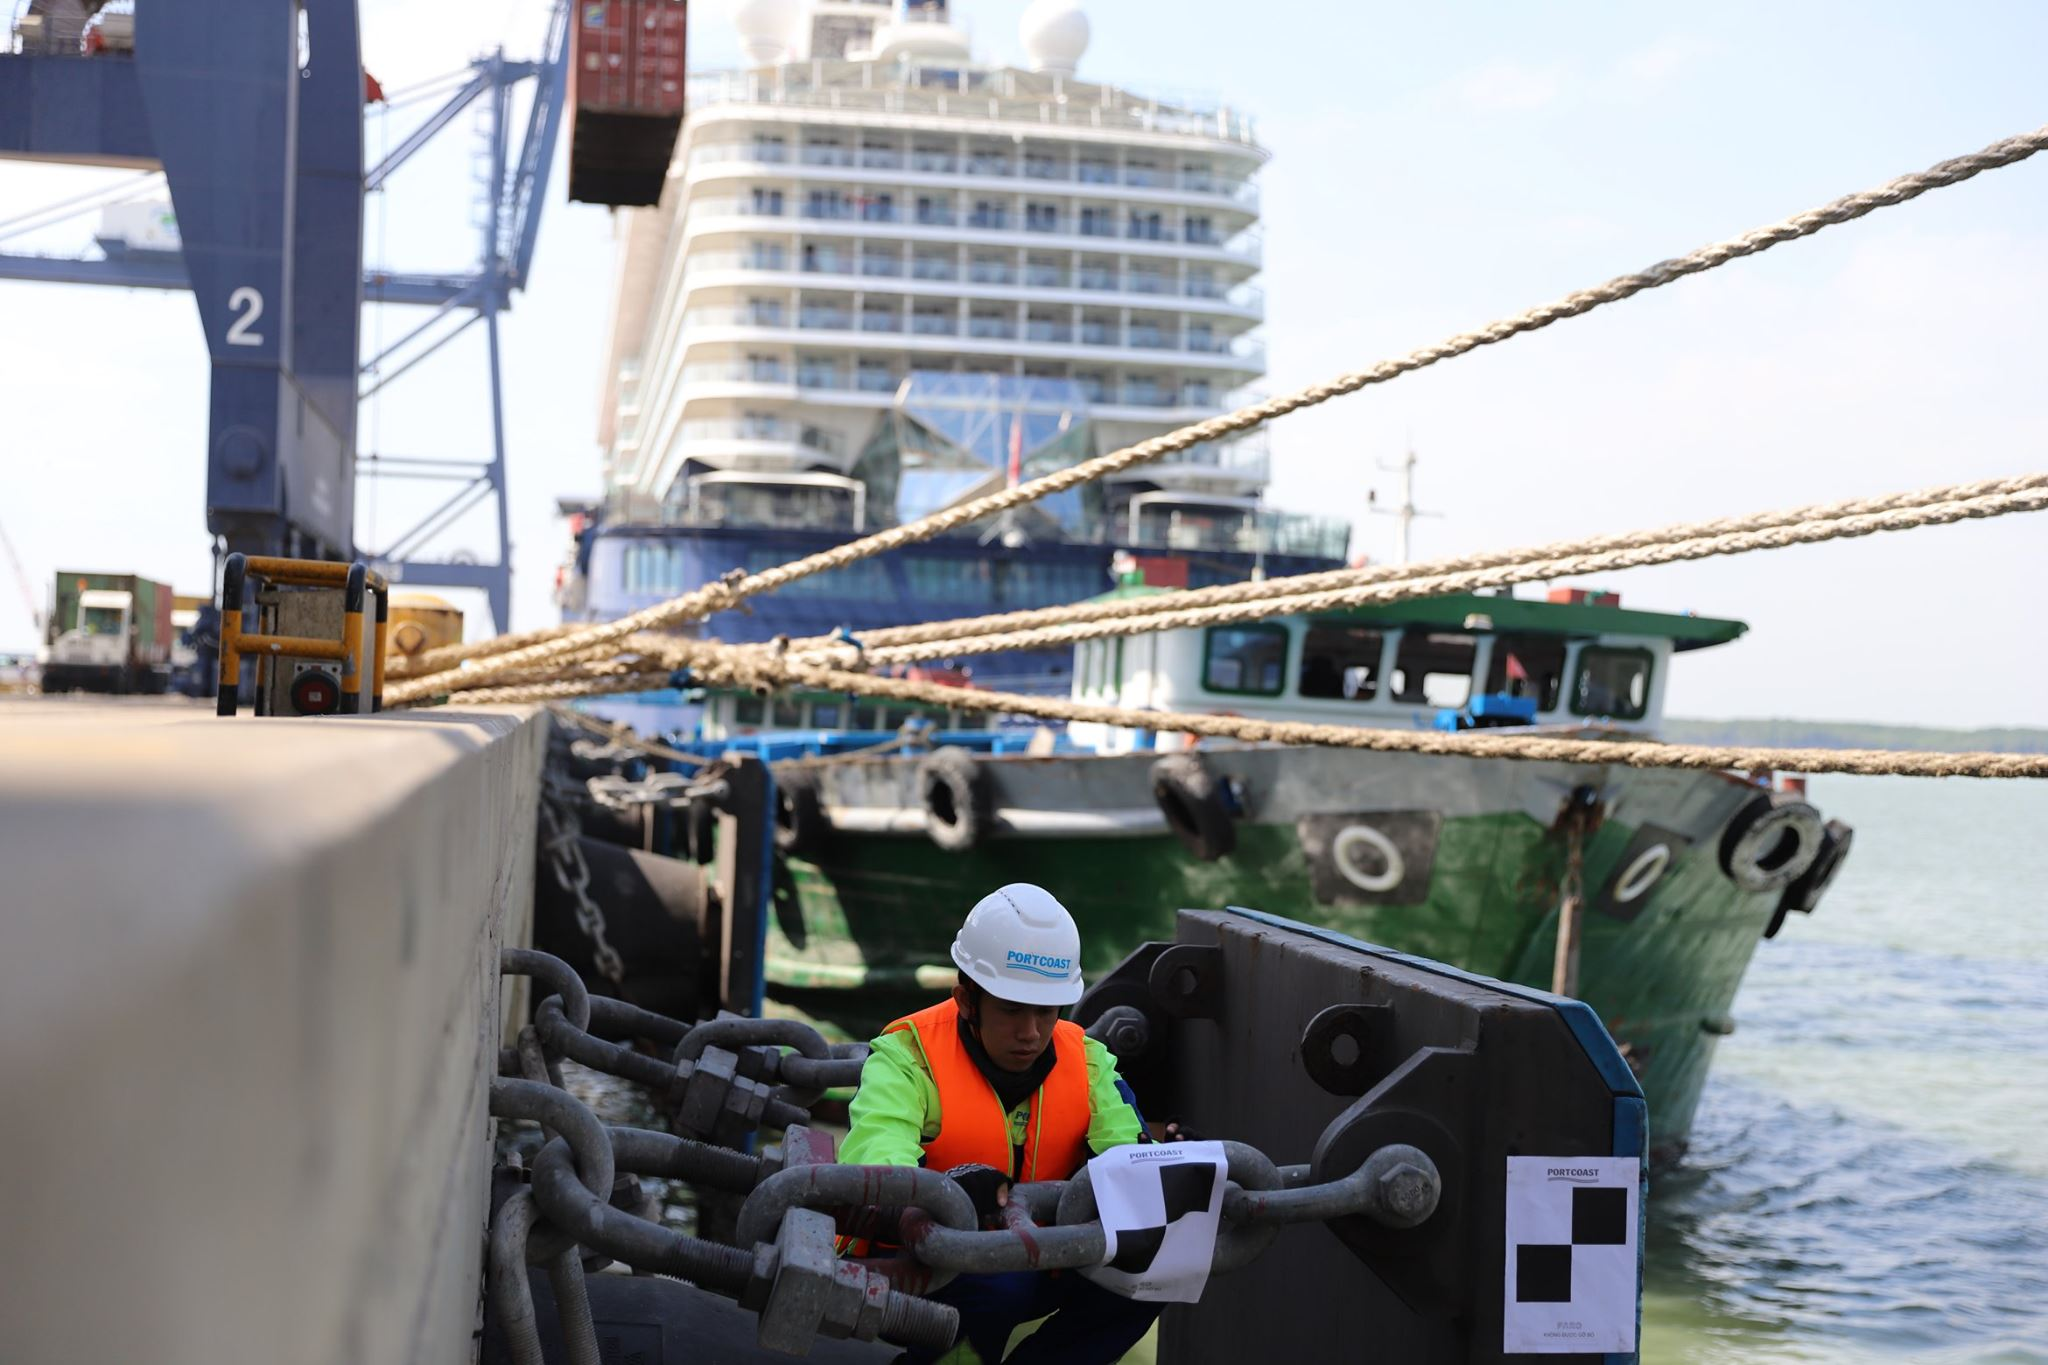 Construction inspections work at SP-SSA International Terminal (SSIT)